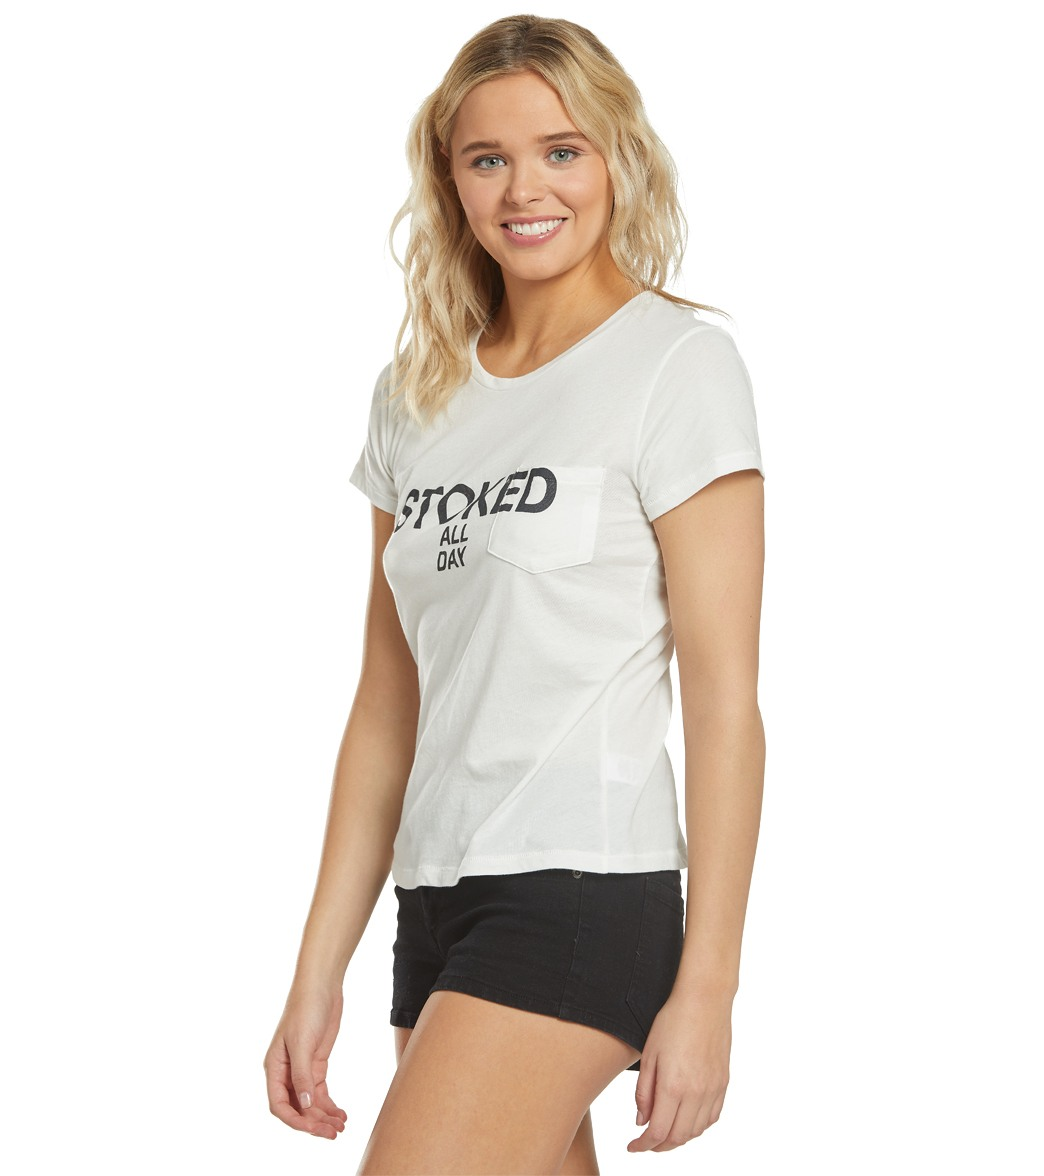 87045be3 Billabong Stoked All Day T-Shirt at SwimOutlet.com